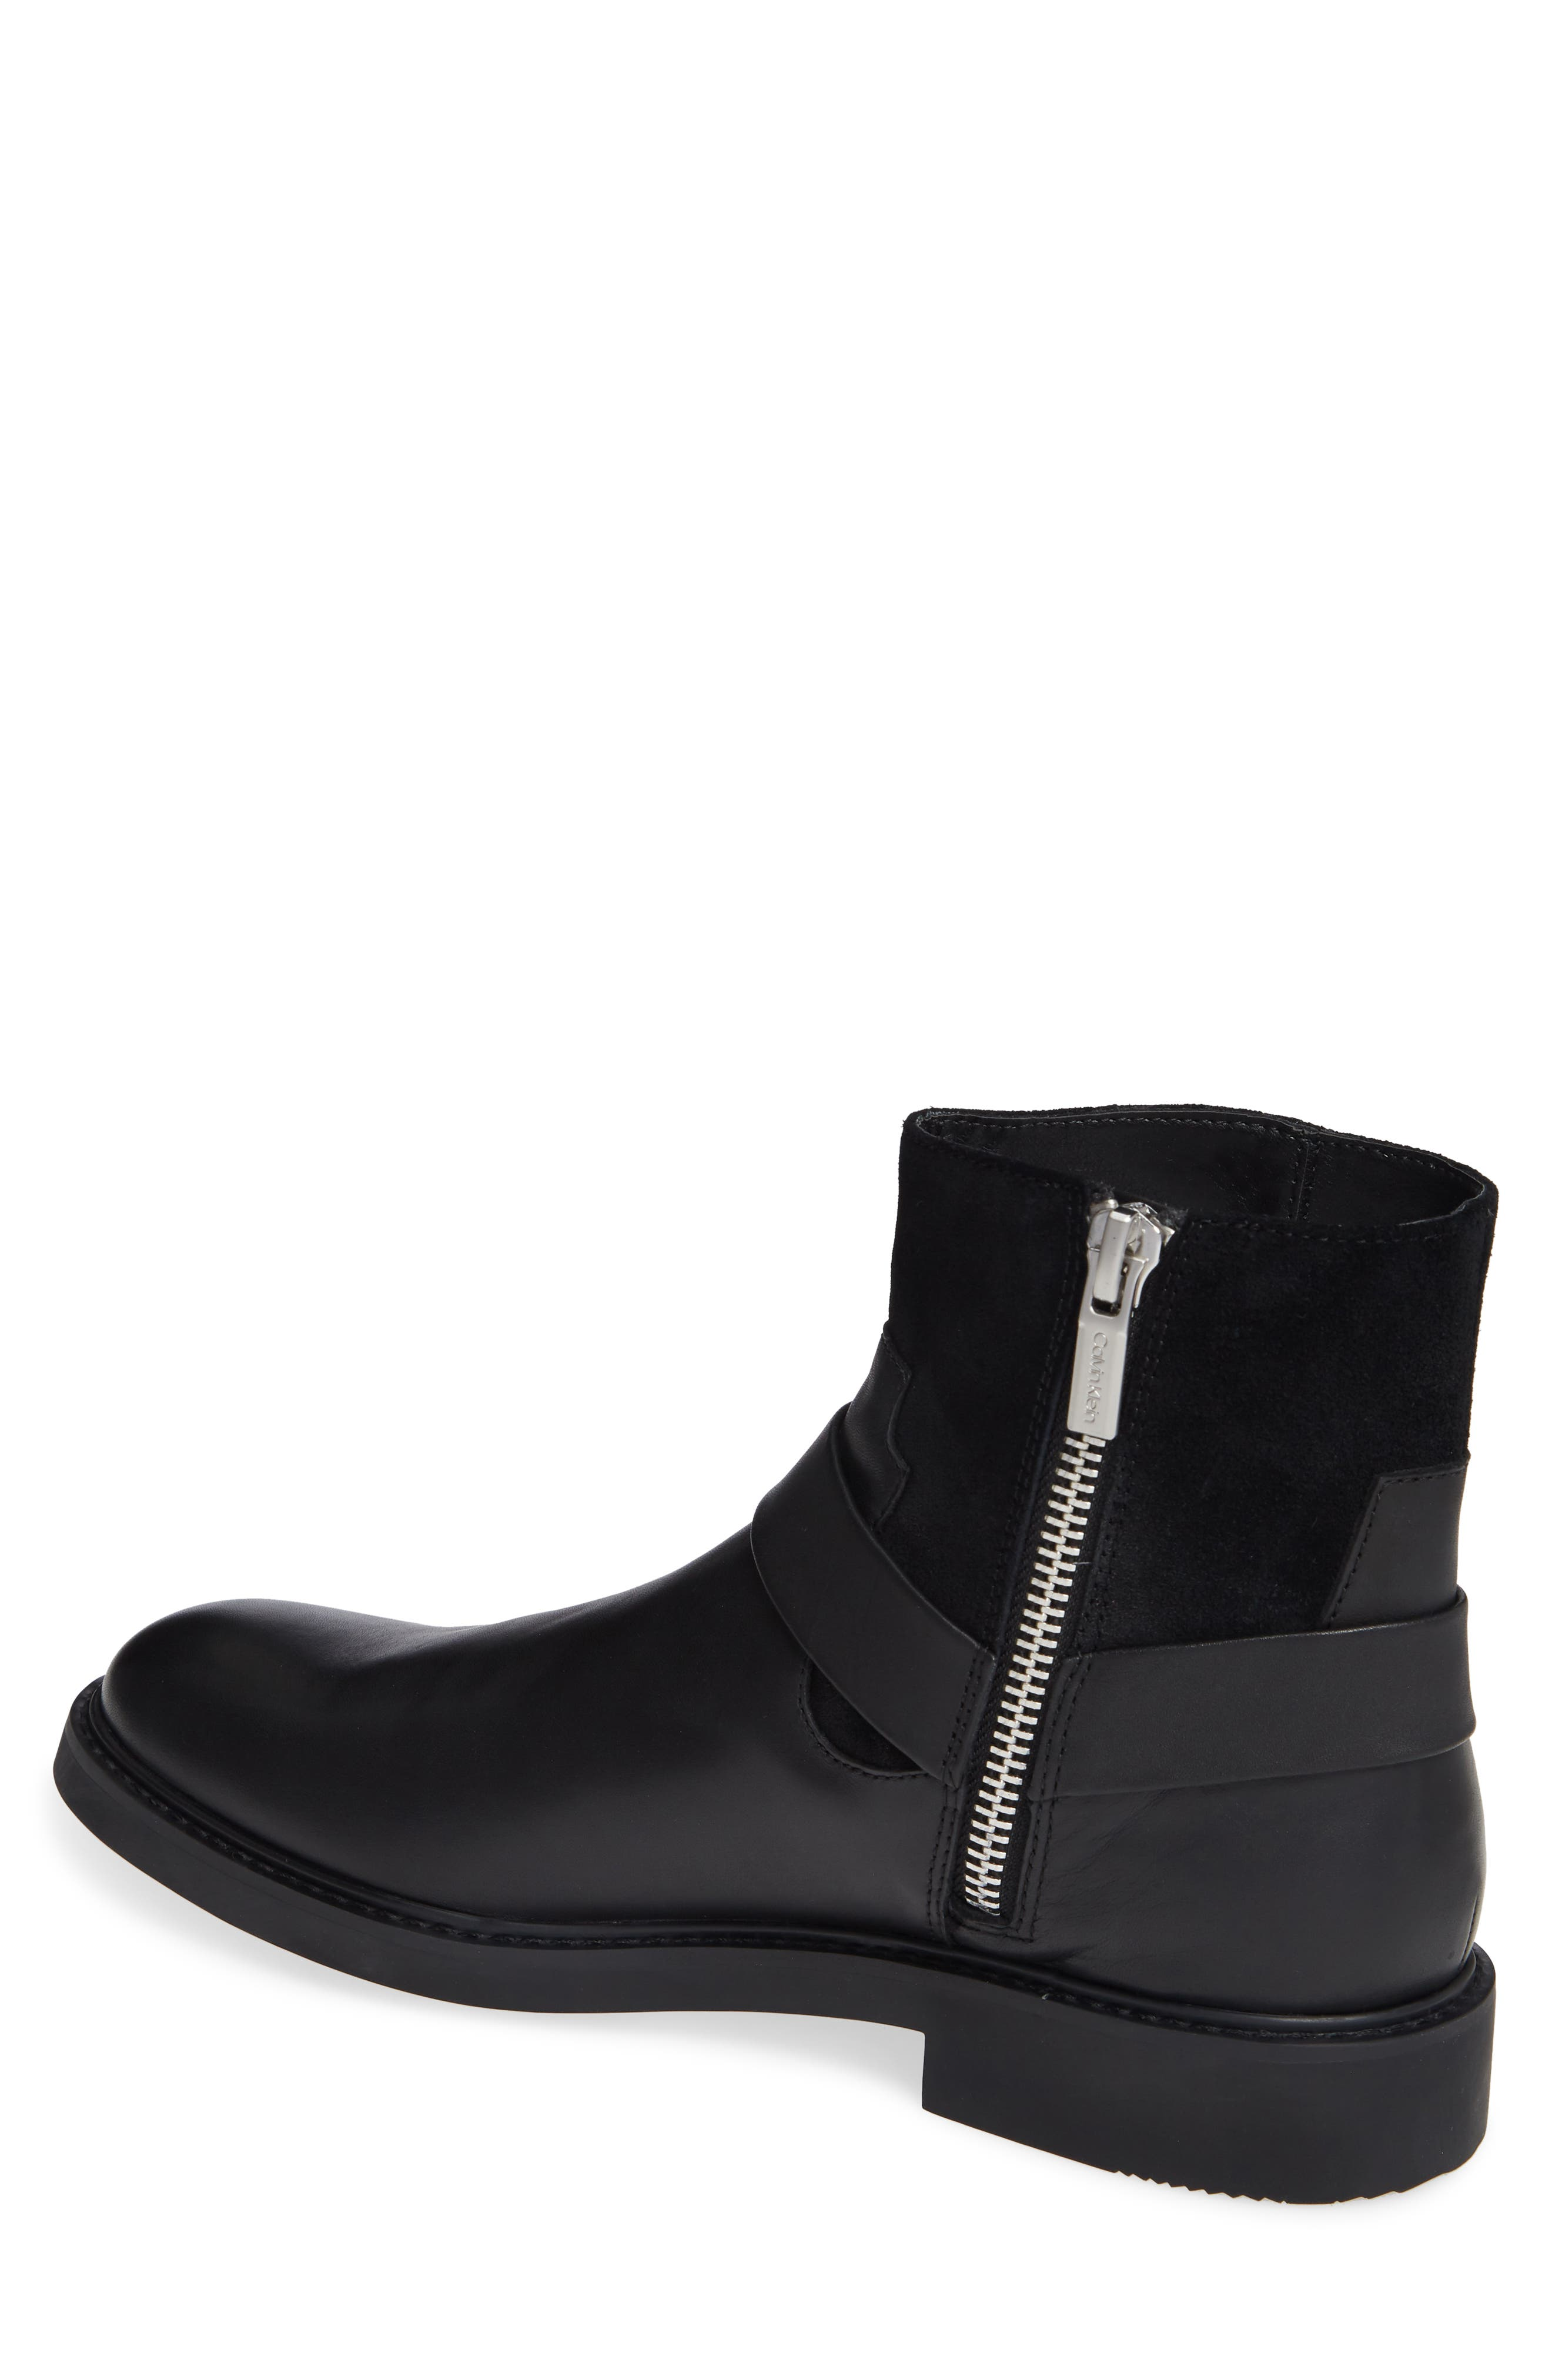 Vergil Zip Boot,                             Alternate thumbnail 2, color,                             001